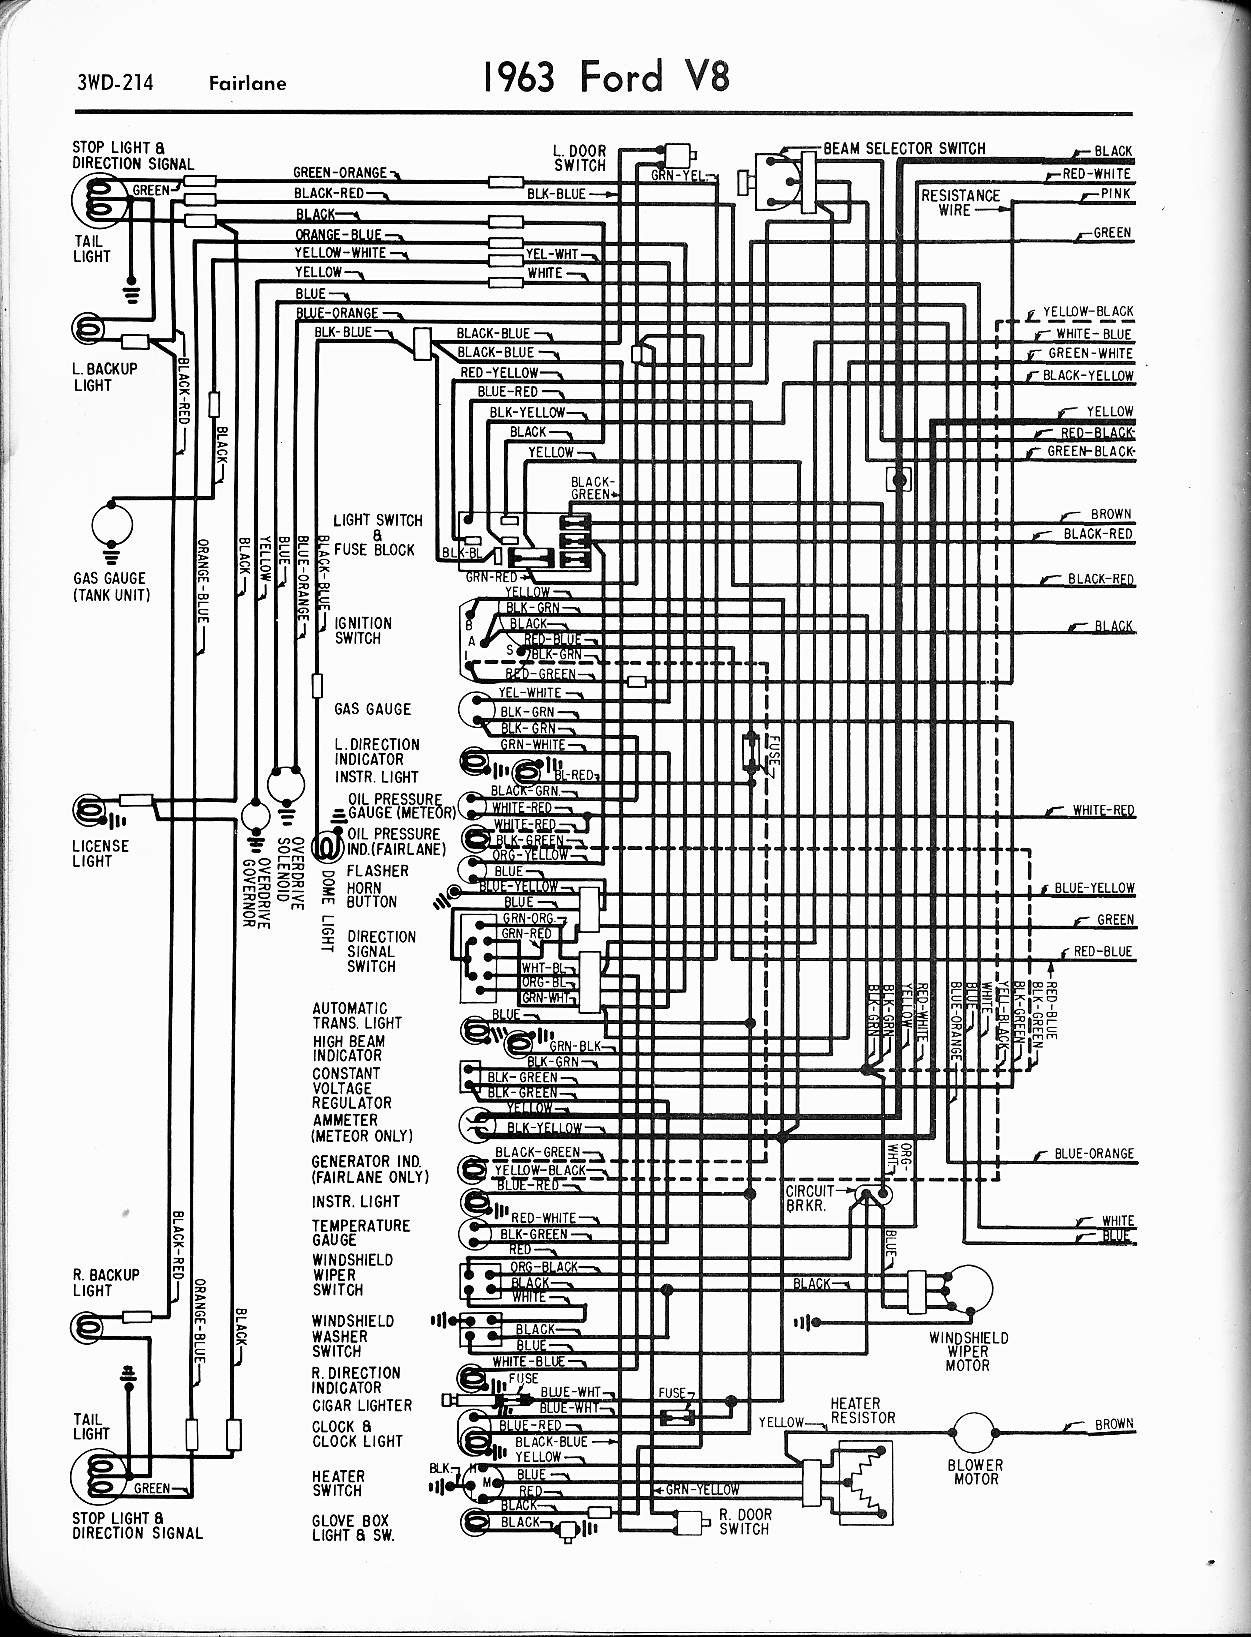 57 65 Ford Wiring Diagrams 2008 Focus Engine Diagram 1963 V8 Fairlane Left